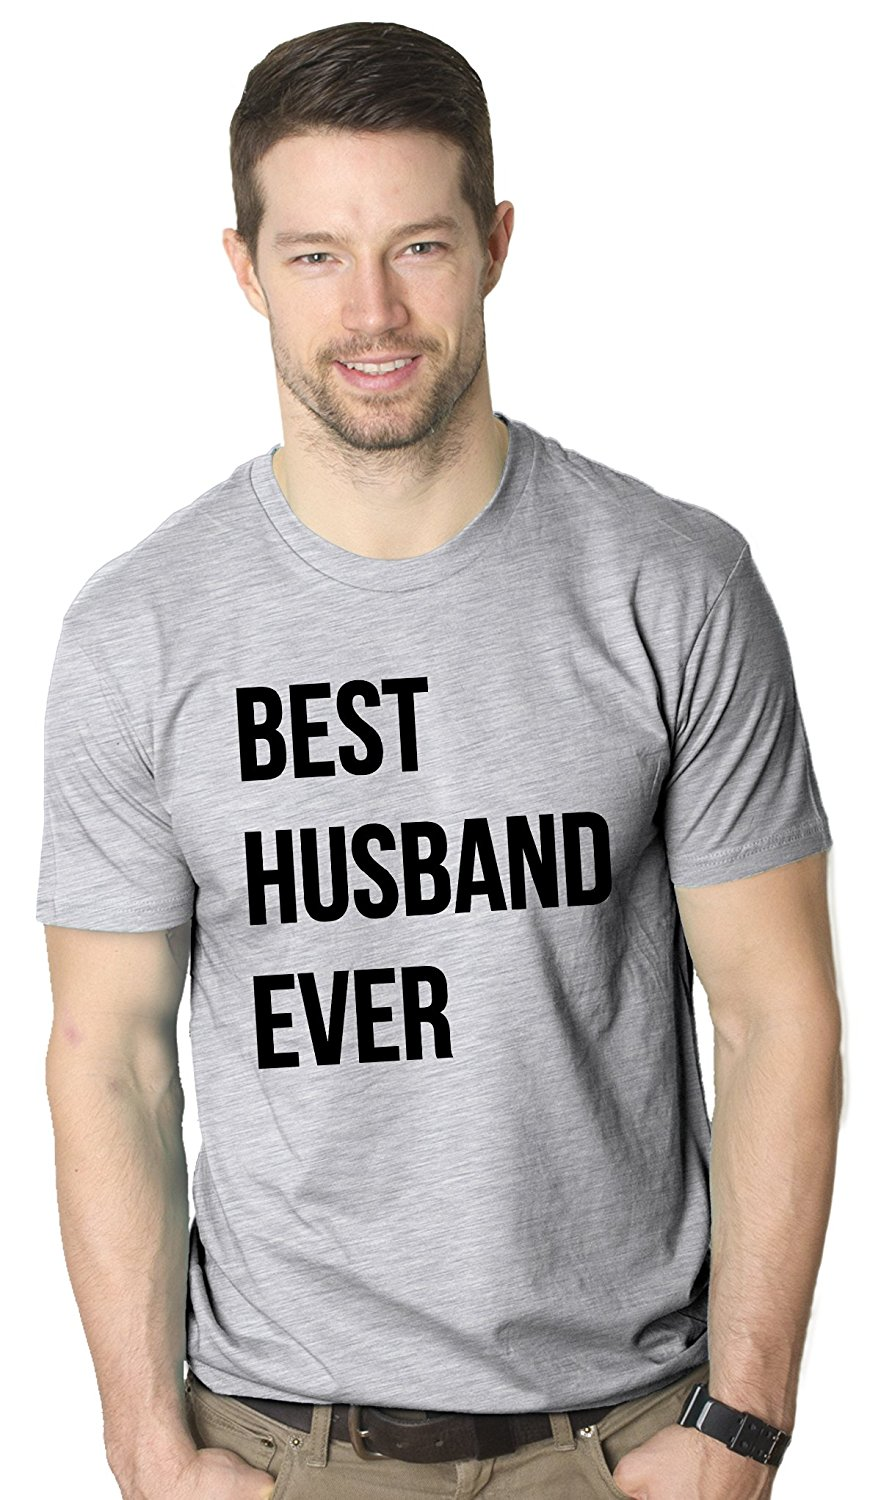 Mens Best Husband Ever T Shirt Funny T Shirts for Dad Fathers Day Gift Sarcasm Wedding